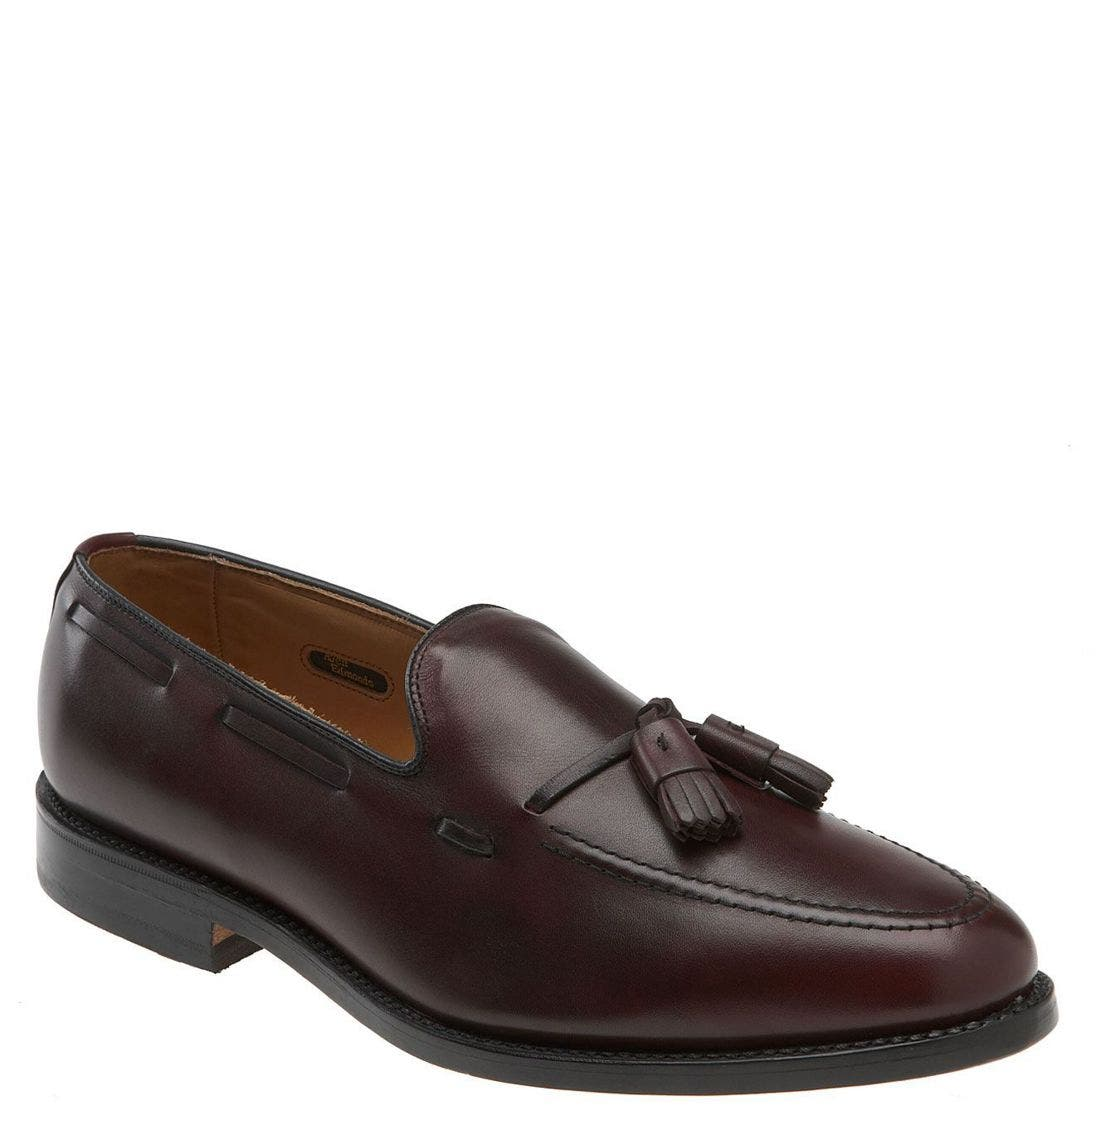 'Grayson' Tassel Loafer,                             Main thumbnail 1, color,                             Merlot Leather